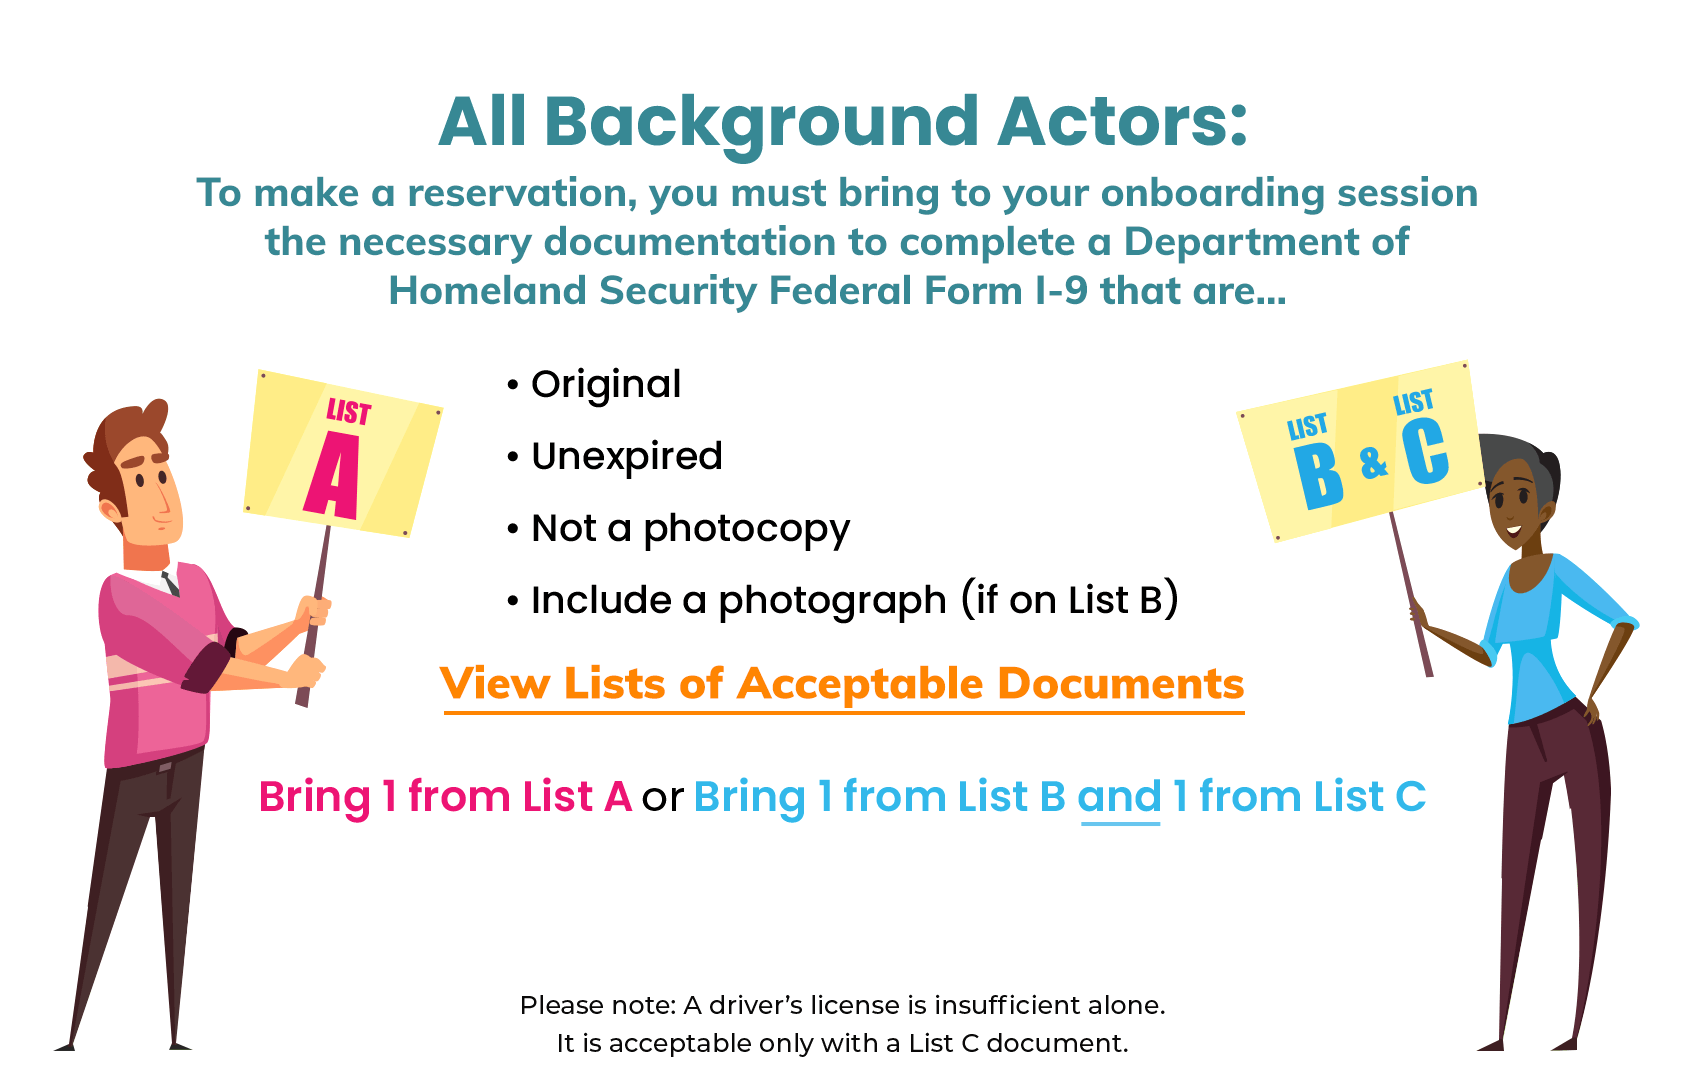 All Background Actors: To make a reservation, you must bring to your onboarding session the necessary documentation to complete a Department of Homeland Security Federal Form I-9 that are: original, unexpired, not a photocopy, and include a photograph (if on List B). Bring 1 from List A or Bring 1 from List B and 1 from List C. Follow this link to read a list of acceptable documents. Please note, a driver's license is insufficient alone. It is acceptable only with a List C document.